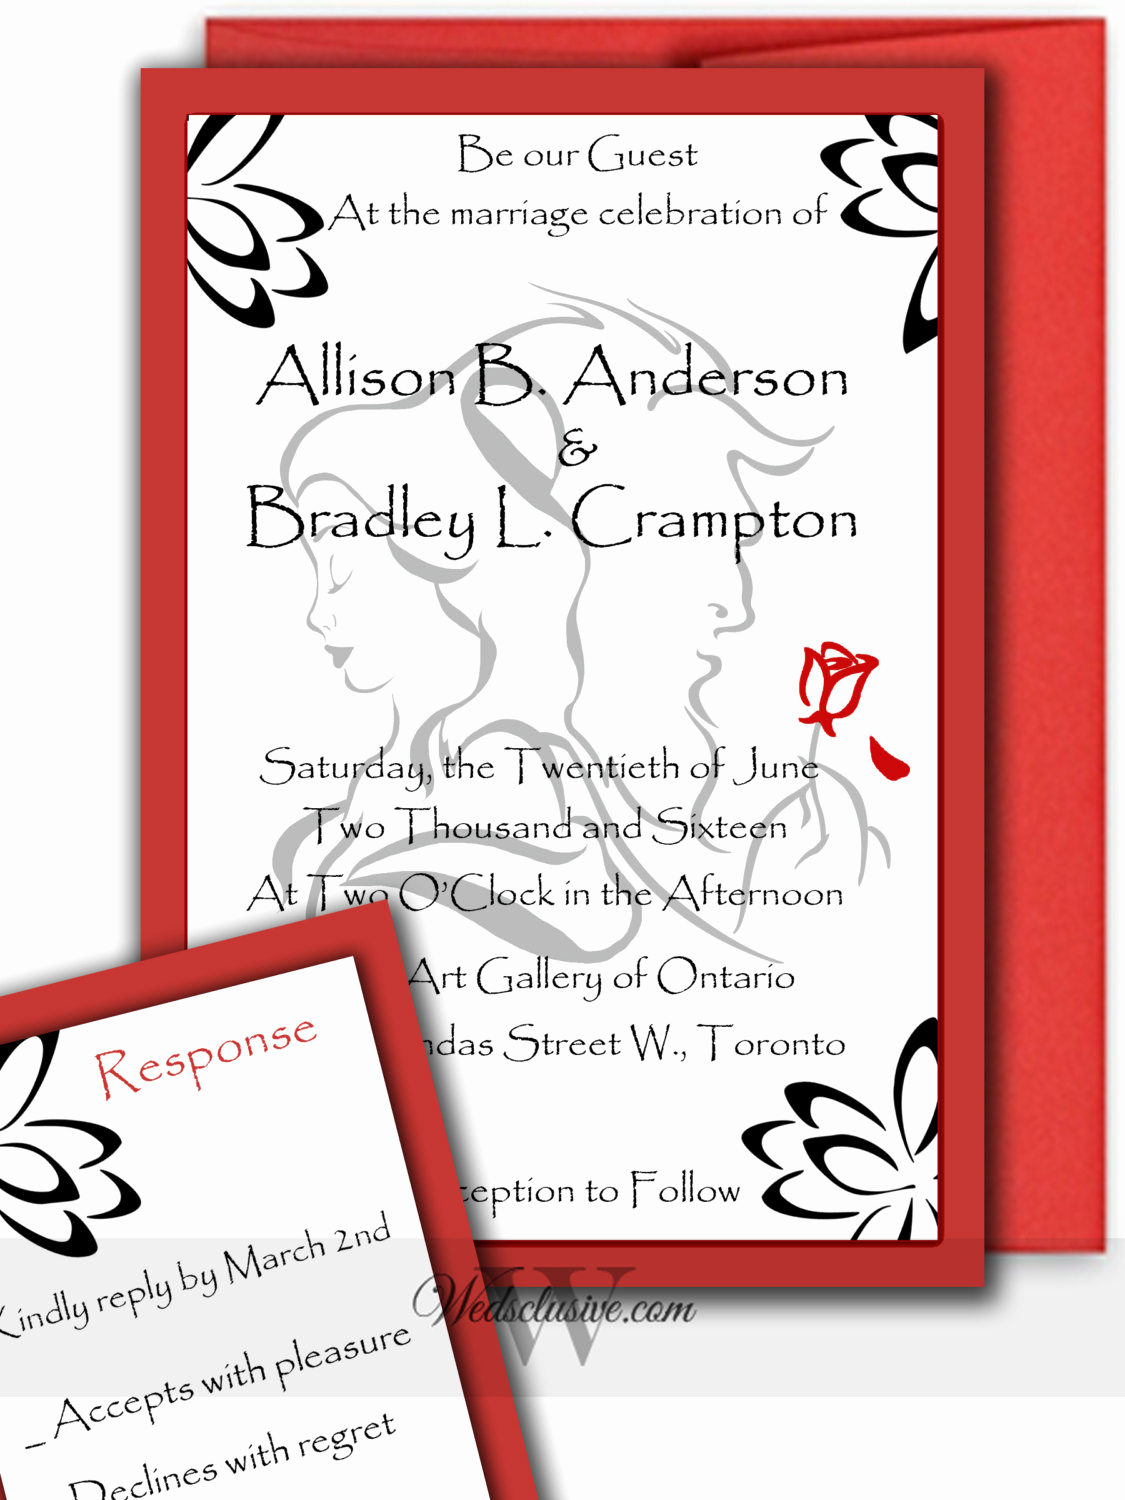 Beauty and the Beast Invitation New Beauty and the Beast Wedding Invitations Romantic Disney